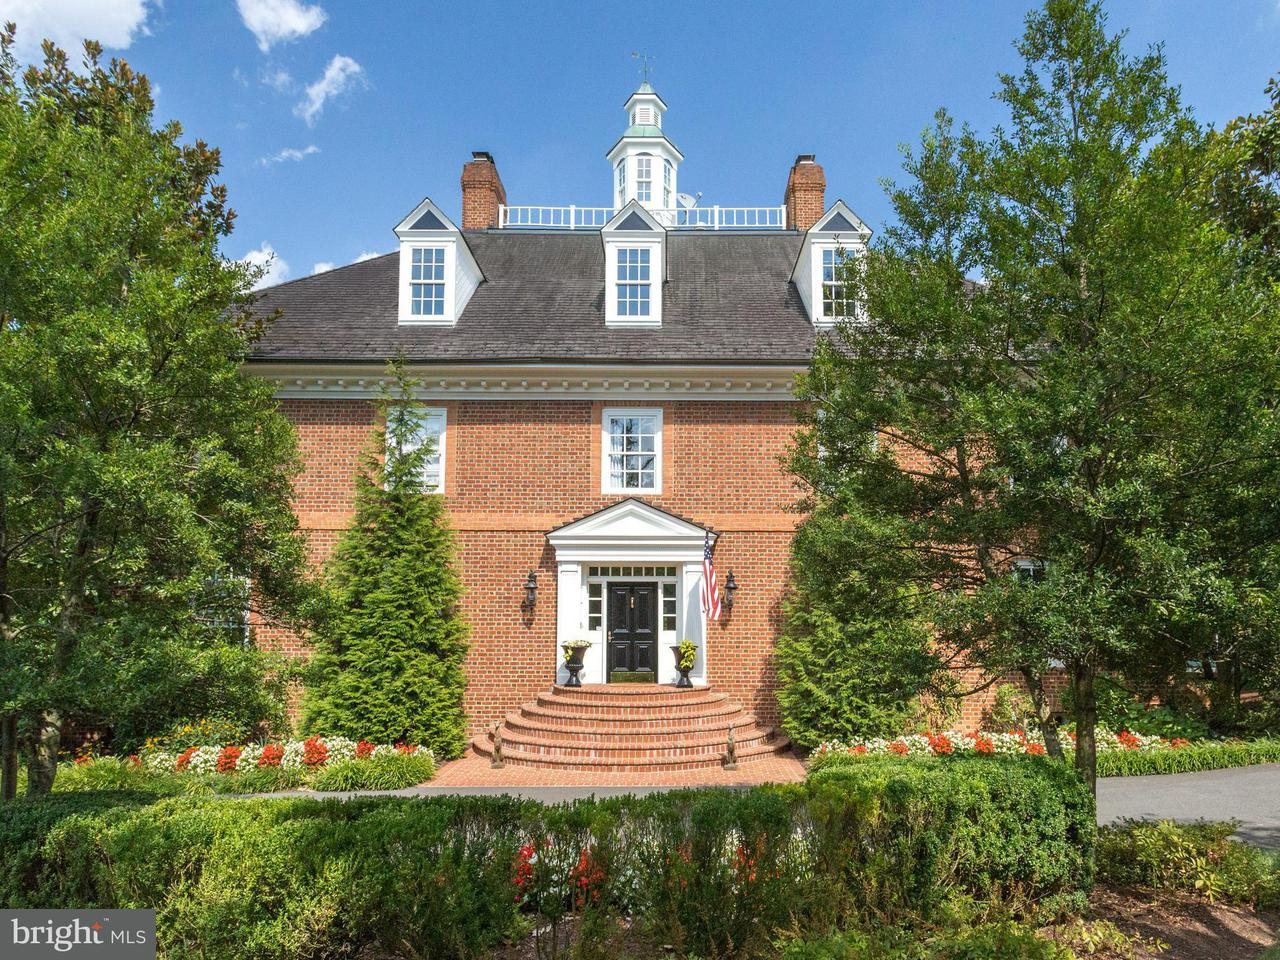 Additional photo for property listing at 1287 BALLANTRAE FARM Drive 1287 BALLANTRAE FARM Drive McLean, Virginia 22101 United States